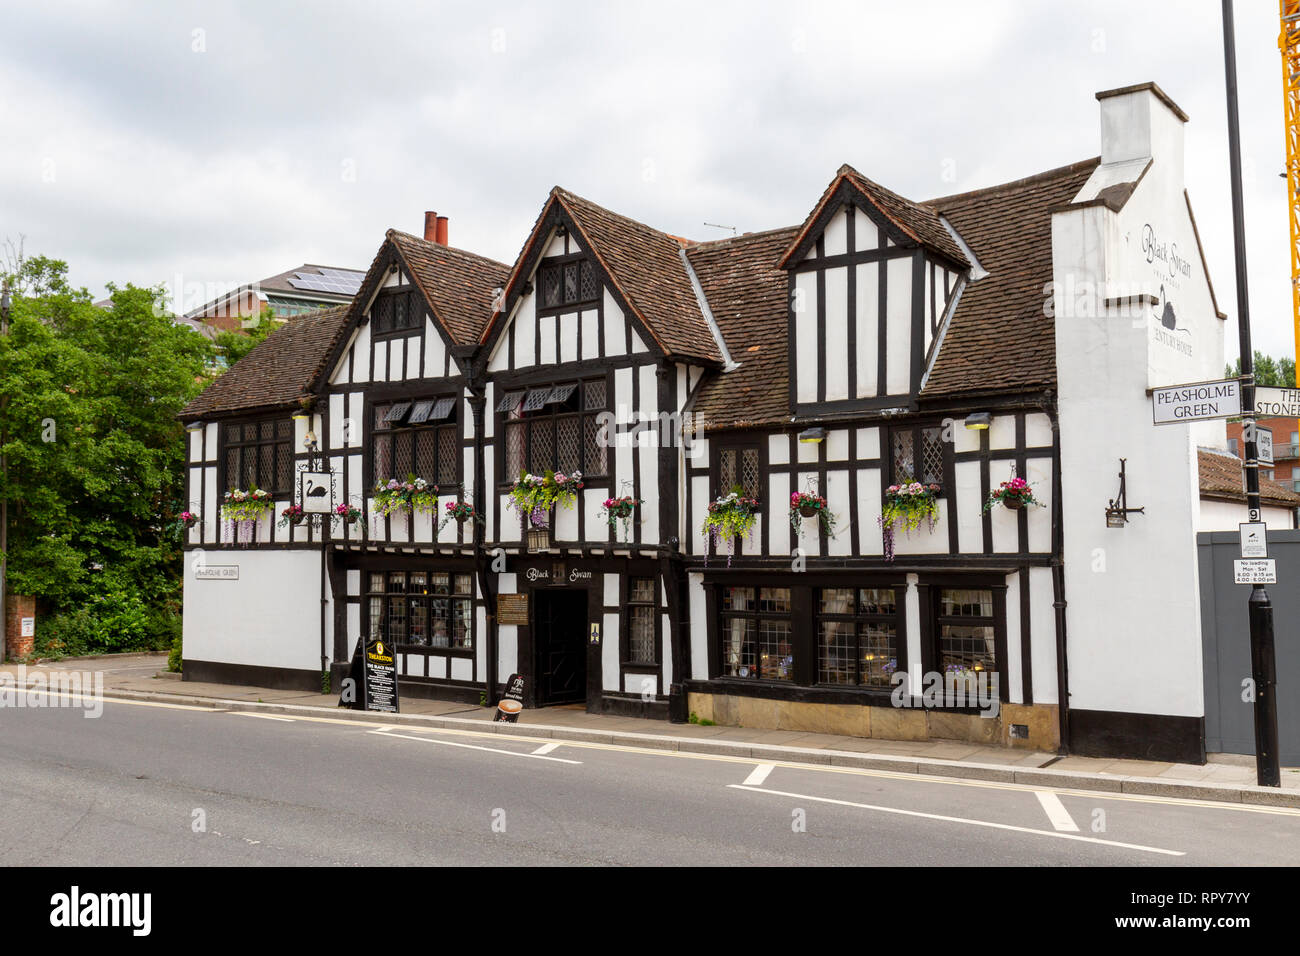 The Black Swan Inn hotel and pub in the City of York, Yorkshire, UK. - Stock Image